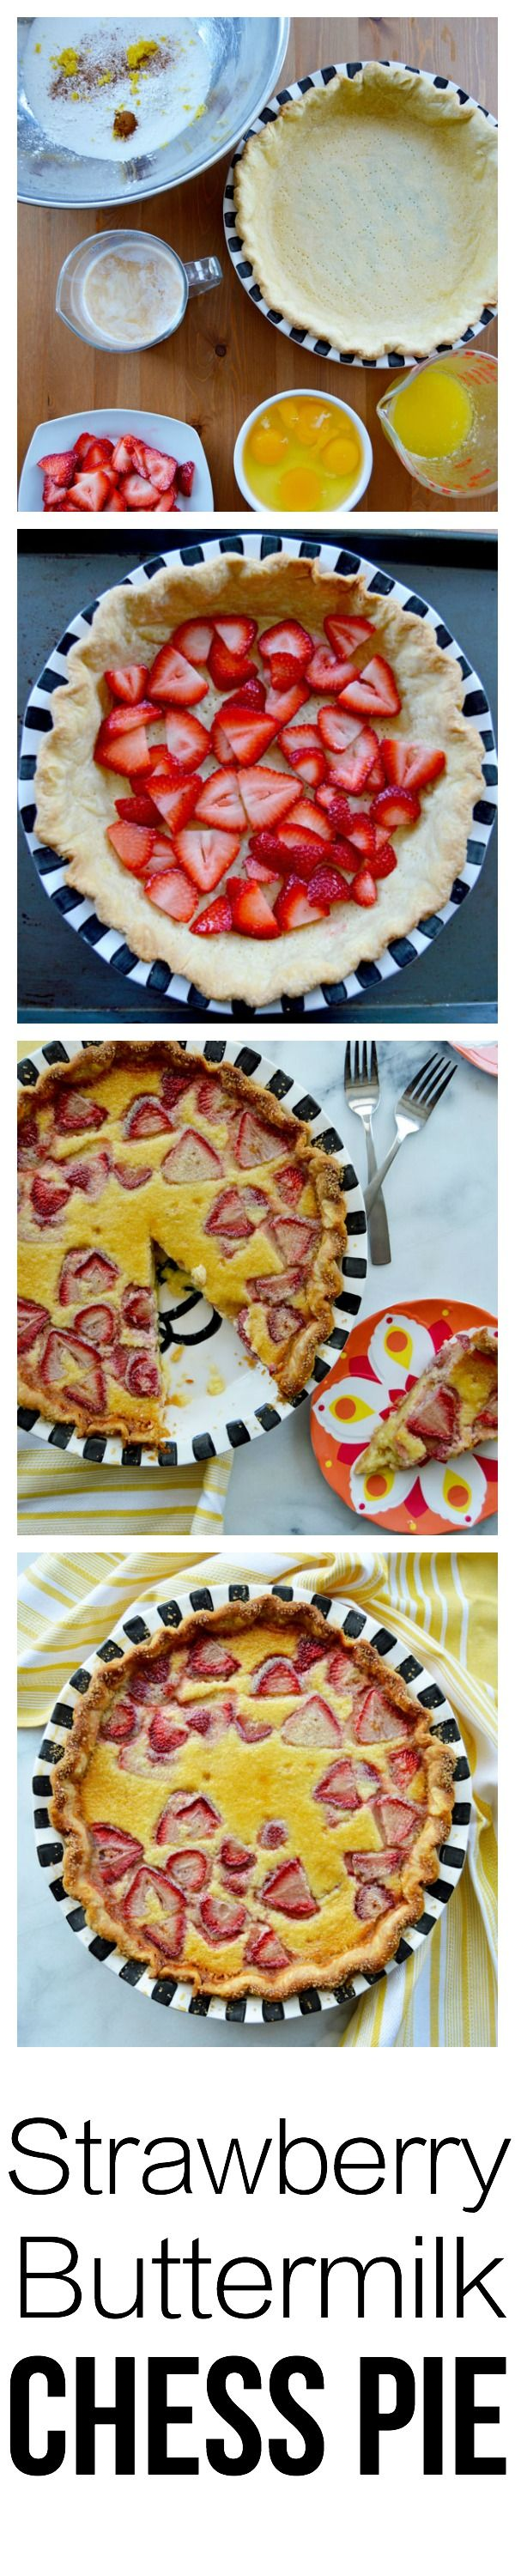 An modern take on a southern classic. Chess pies are often referred to as 'pantry pies' because the ingredients are simple and usually already in your pantry. In this chess pie, I've added some buttermilk which provides richness but with a tang that balances the sweetness. The strawberries add a pop of color and the bright taste of summer.  There's a step-by-step tutorial so even beginner bakers can bake this pie! | thehungrytravelerblog.com